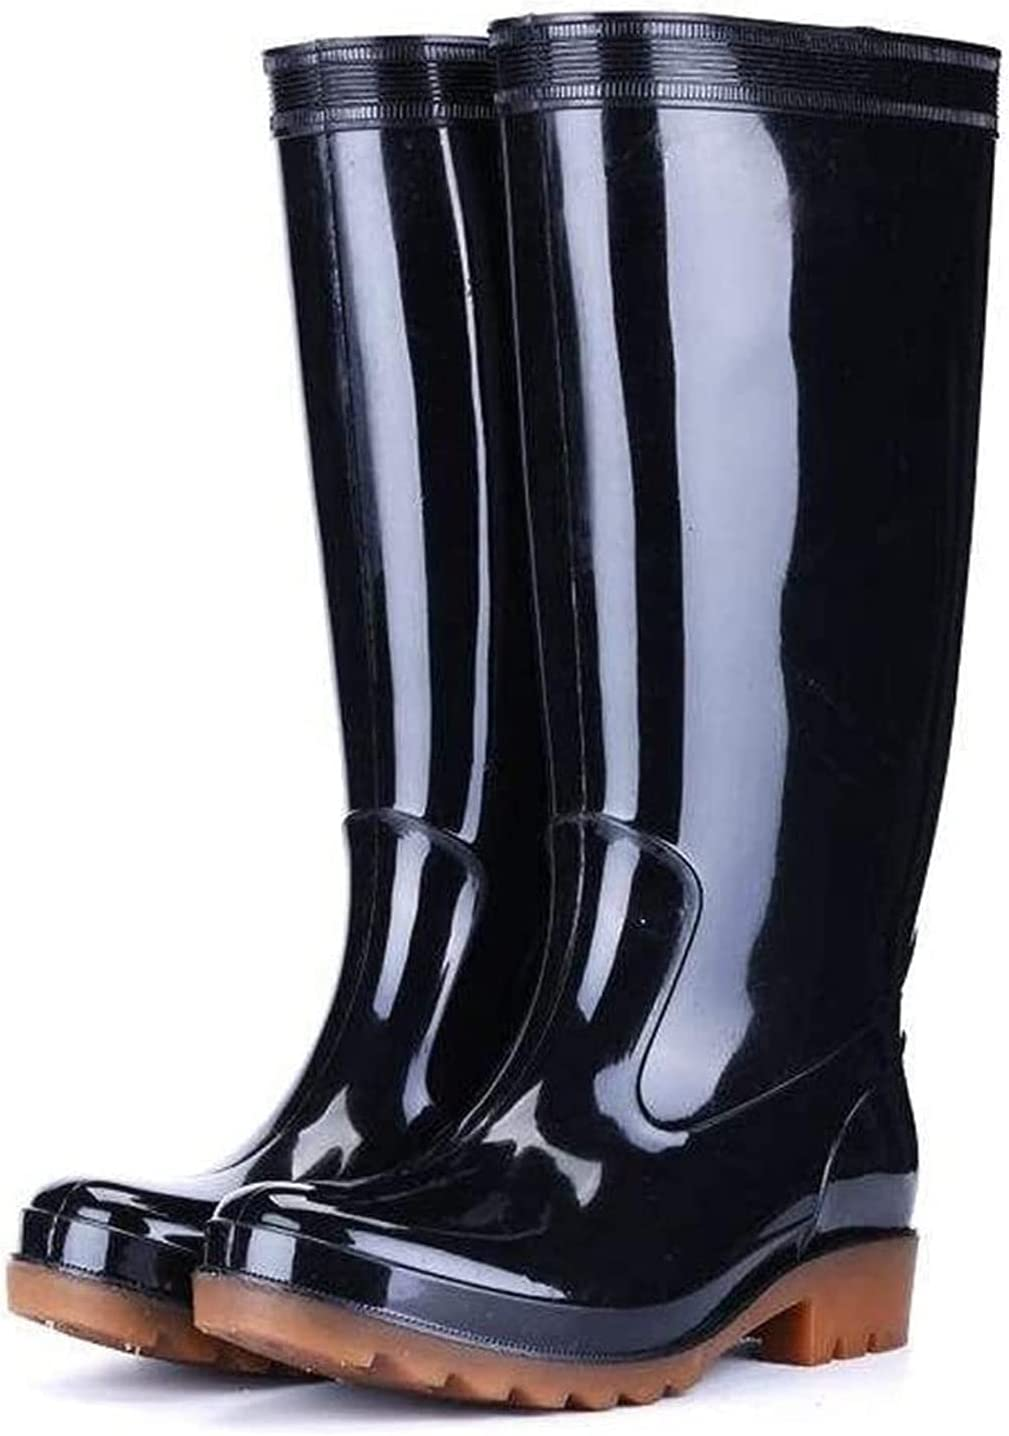 YUESFZ rain At the price of surprise Boots Men's Tall Rain Outdoor Work Black Tube Recommended